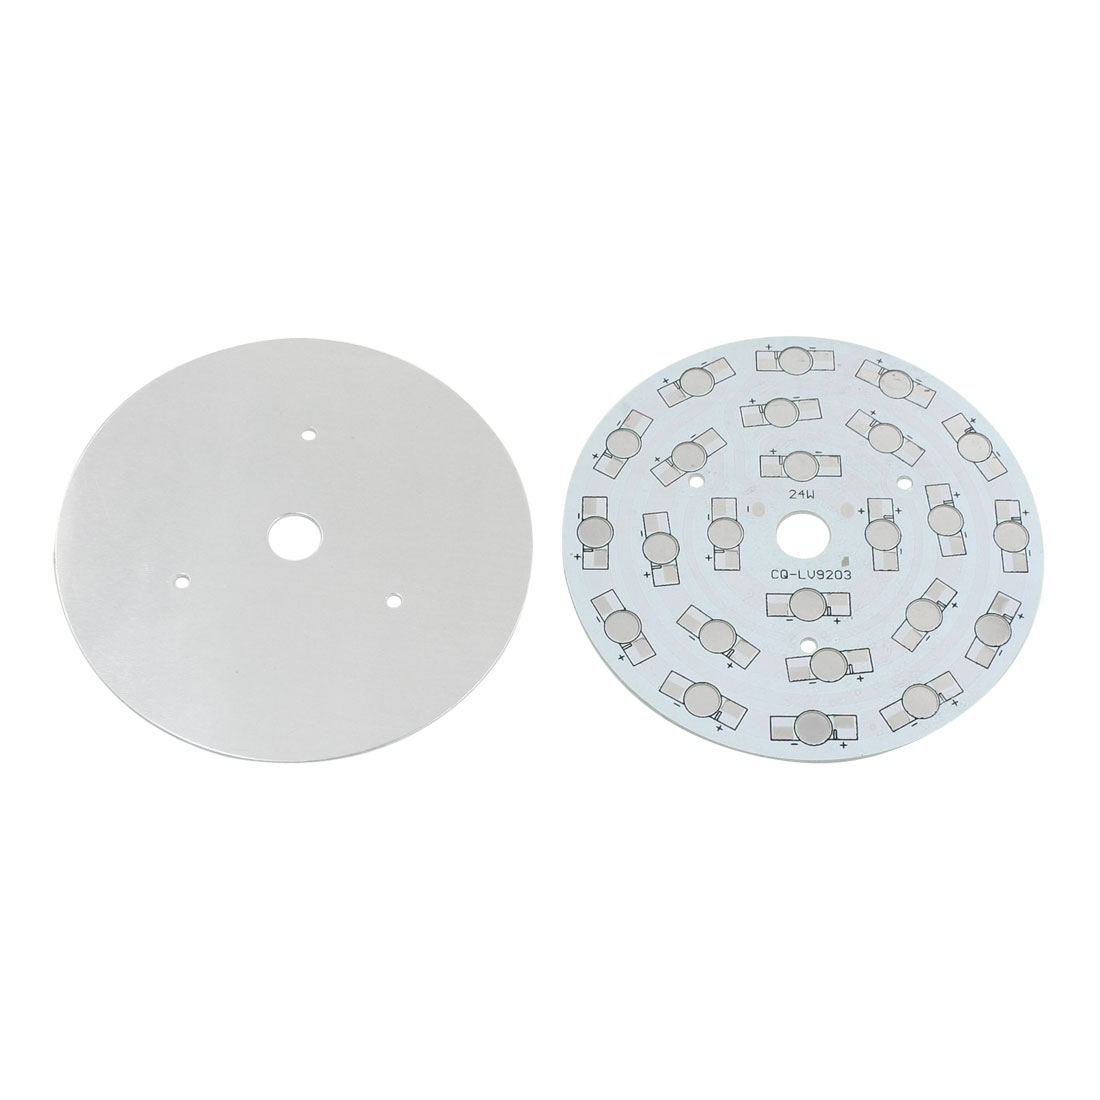 2Pcs High Power 24 x 1W 3W LED DIY Aluminum PCB Circuit Board 108mm Diameter